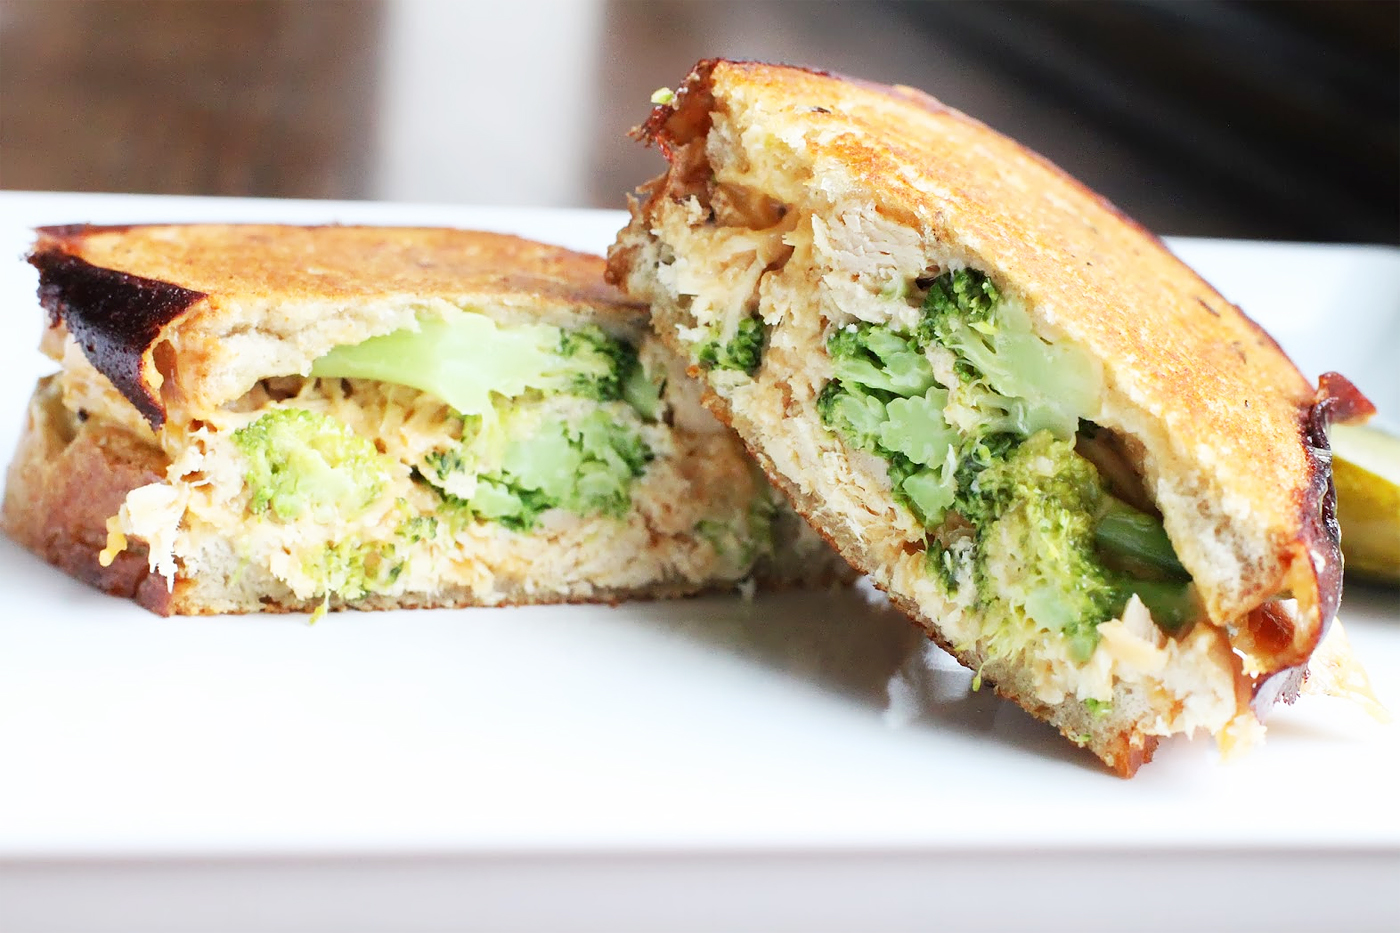 Broccoli And Cheddar Grilled Cheese Sandwich Recipe